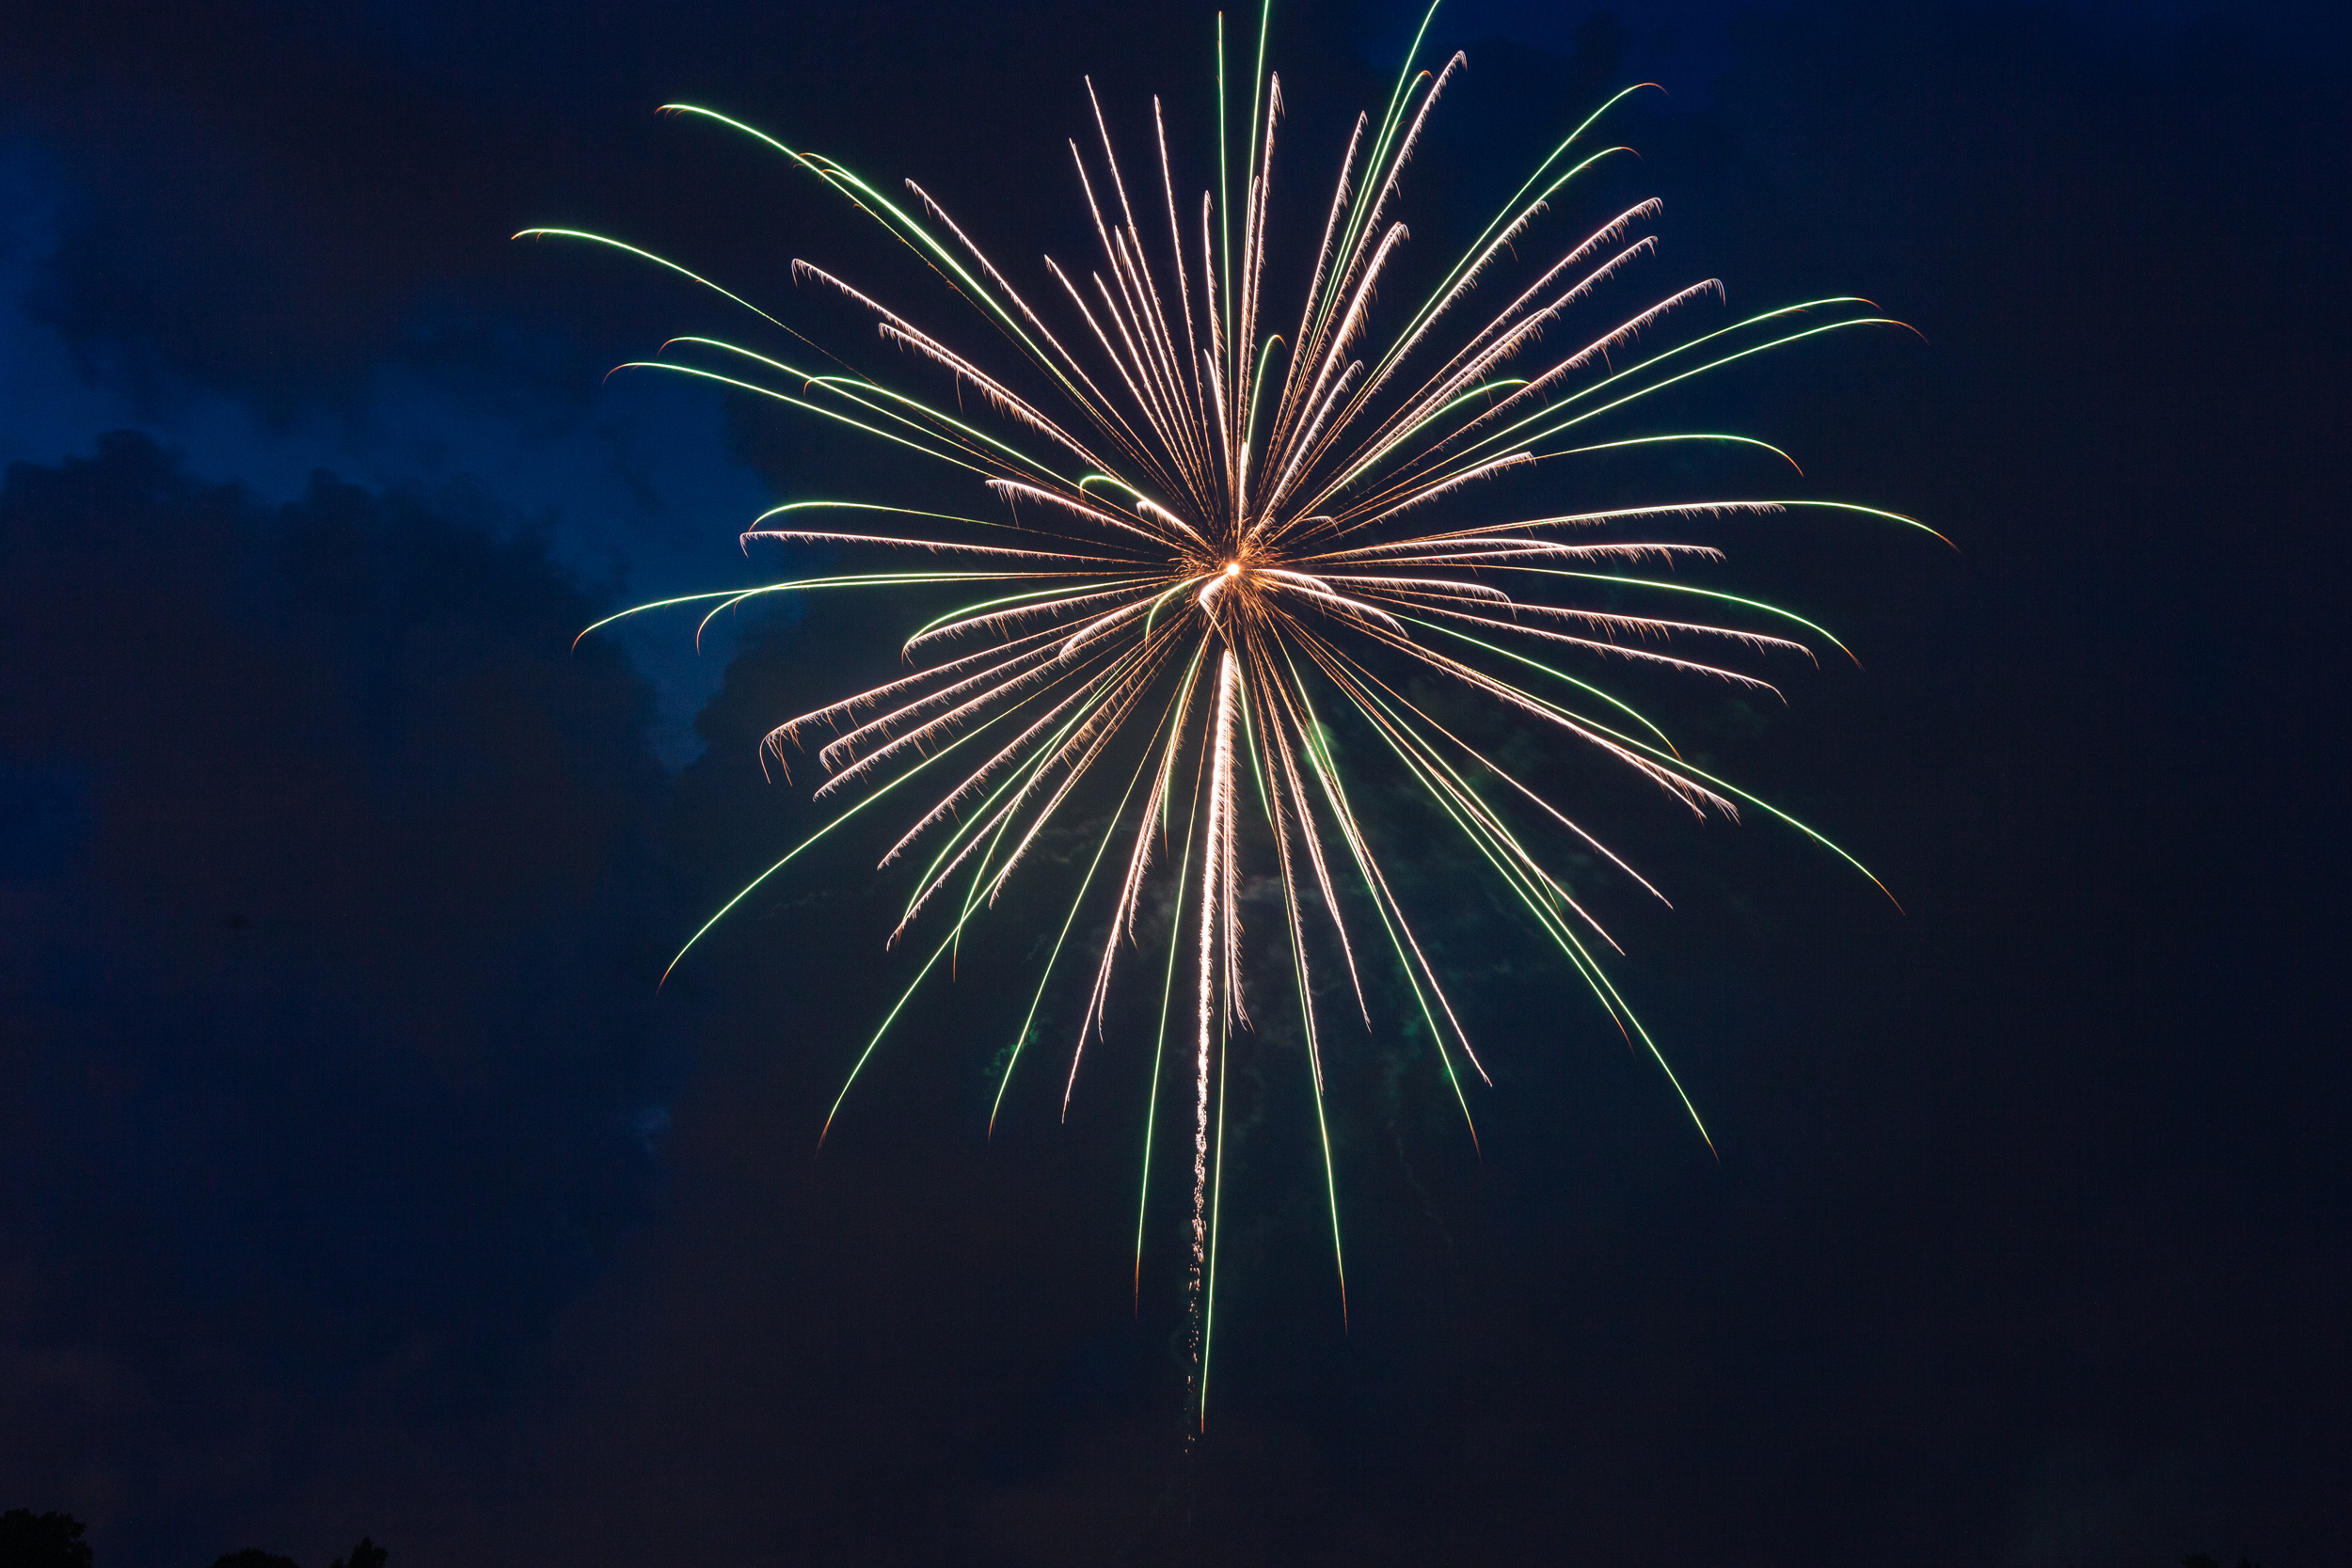 July 4th fireworks at Boone NC 2019-07-04-001.jpg